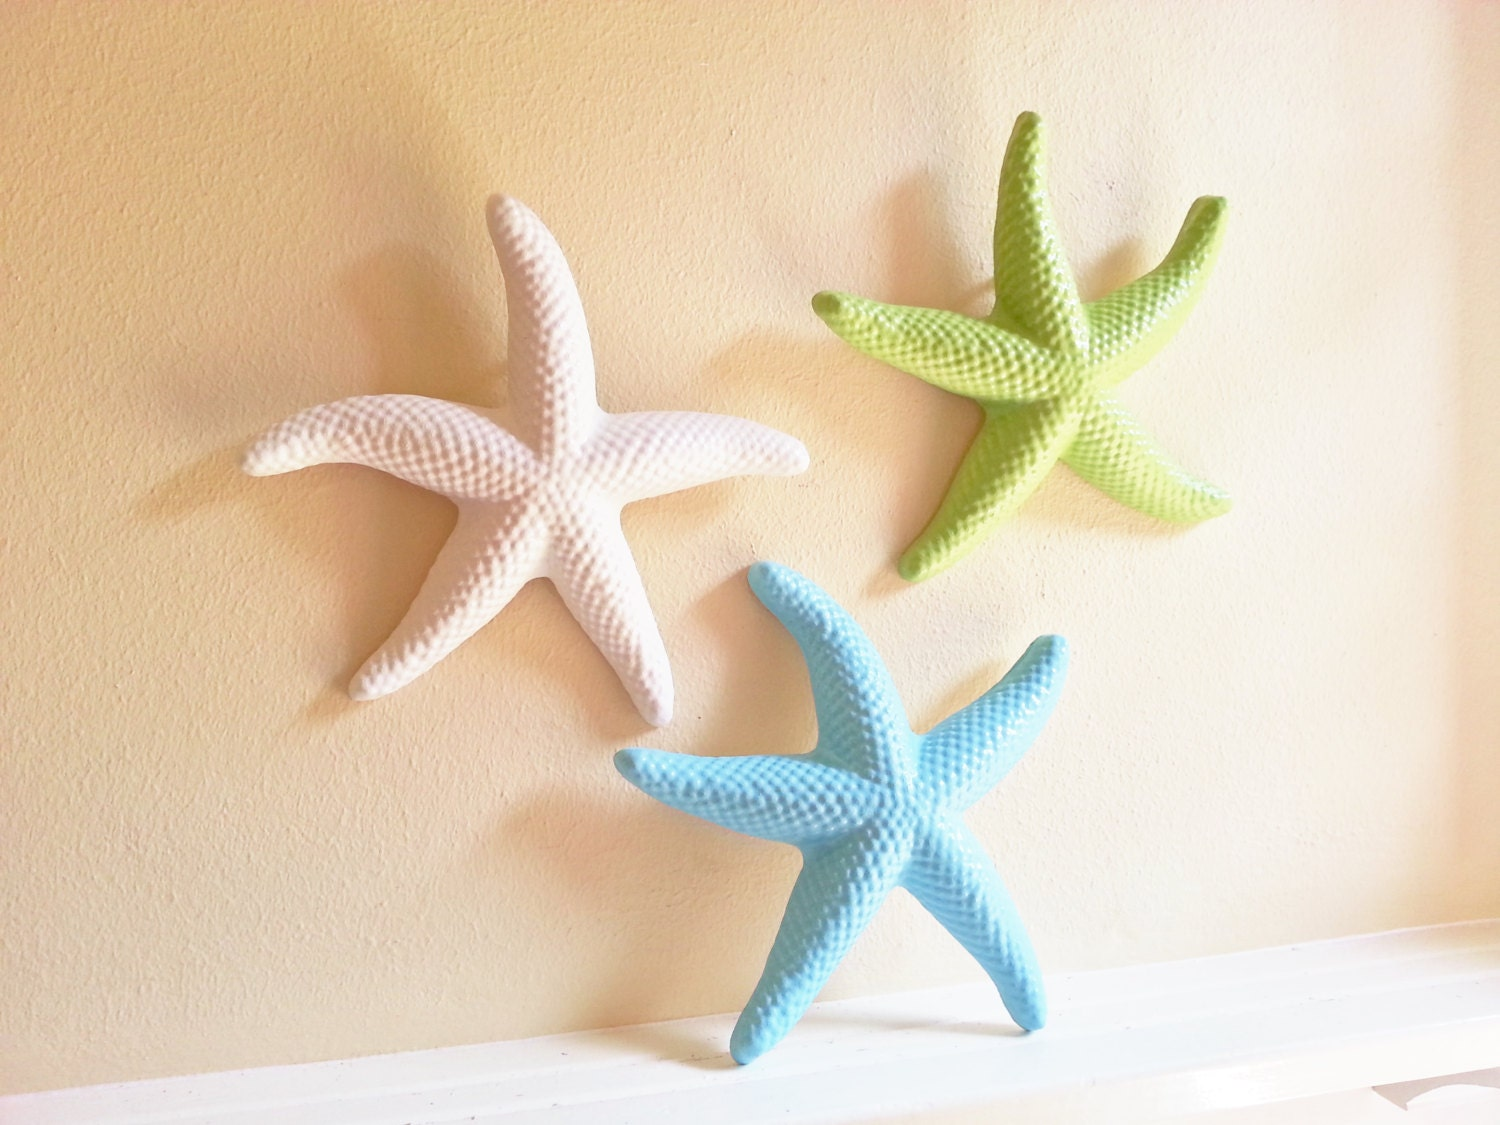 Coastal Wall Decor: Starfish Wall Decor Beach Decor Seashells Large Starfish